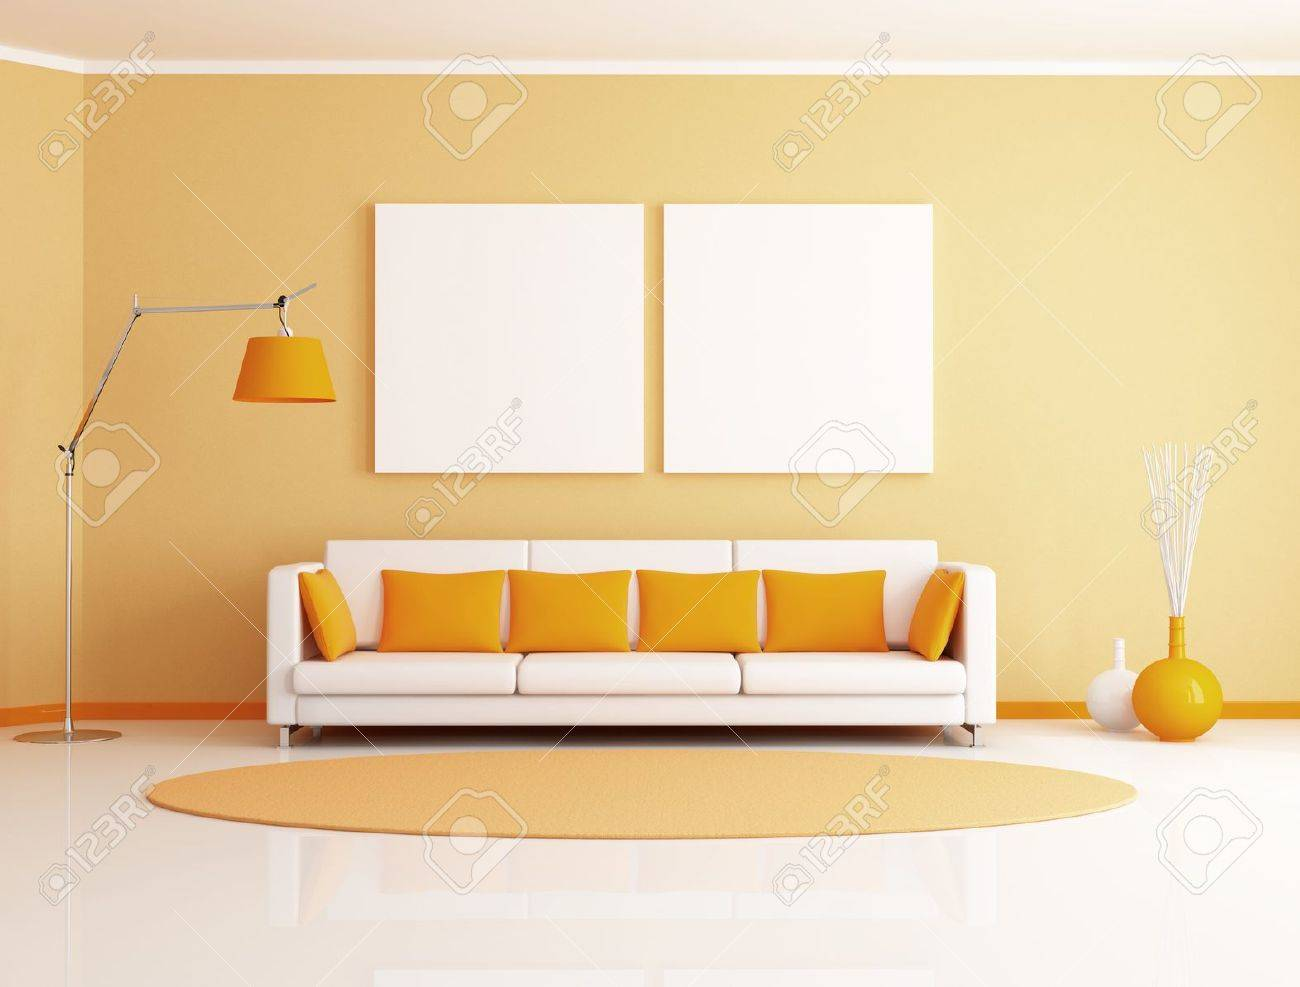 orange and white minimalist living room - rendering stock photo